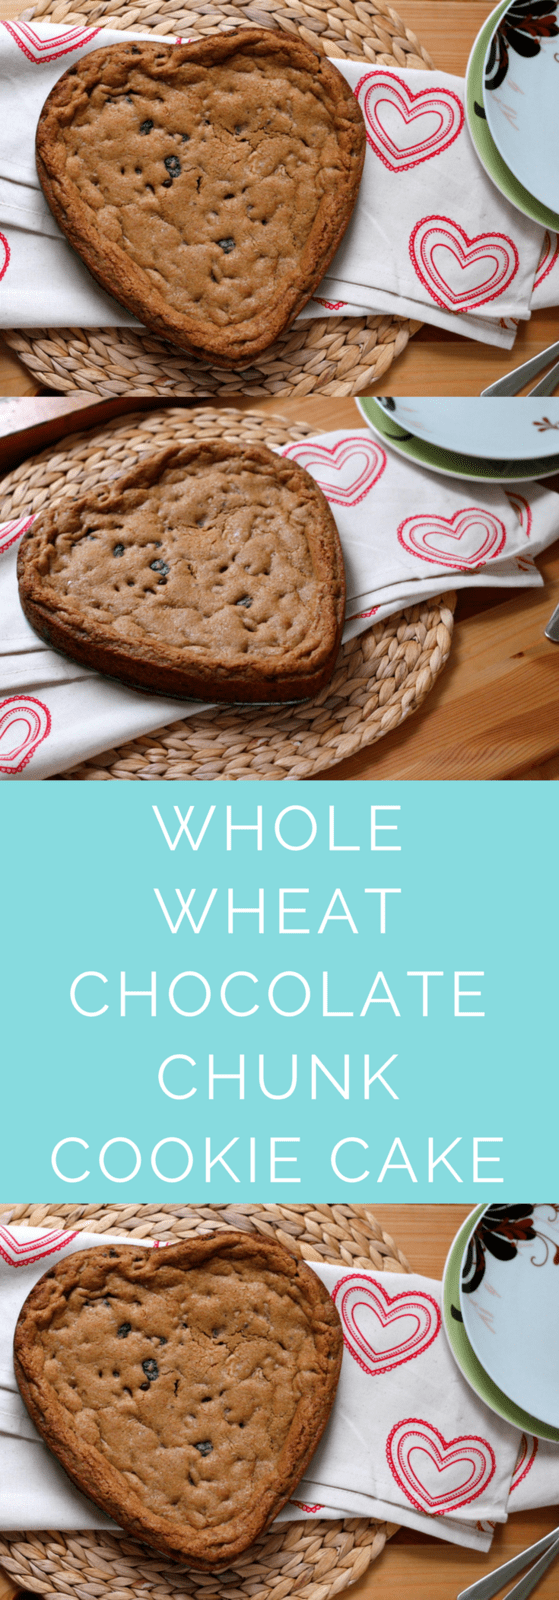 Everyone's favourite whole wheat chocolate chip cookie recipe - in cake form! Fancied up with dried cherries, dark chocolate, walnuts, and smoked salt, this cookie cake is next level delish! #cookie #wholewheat #cookiecake #chocolate #valentinesday